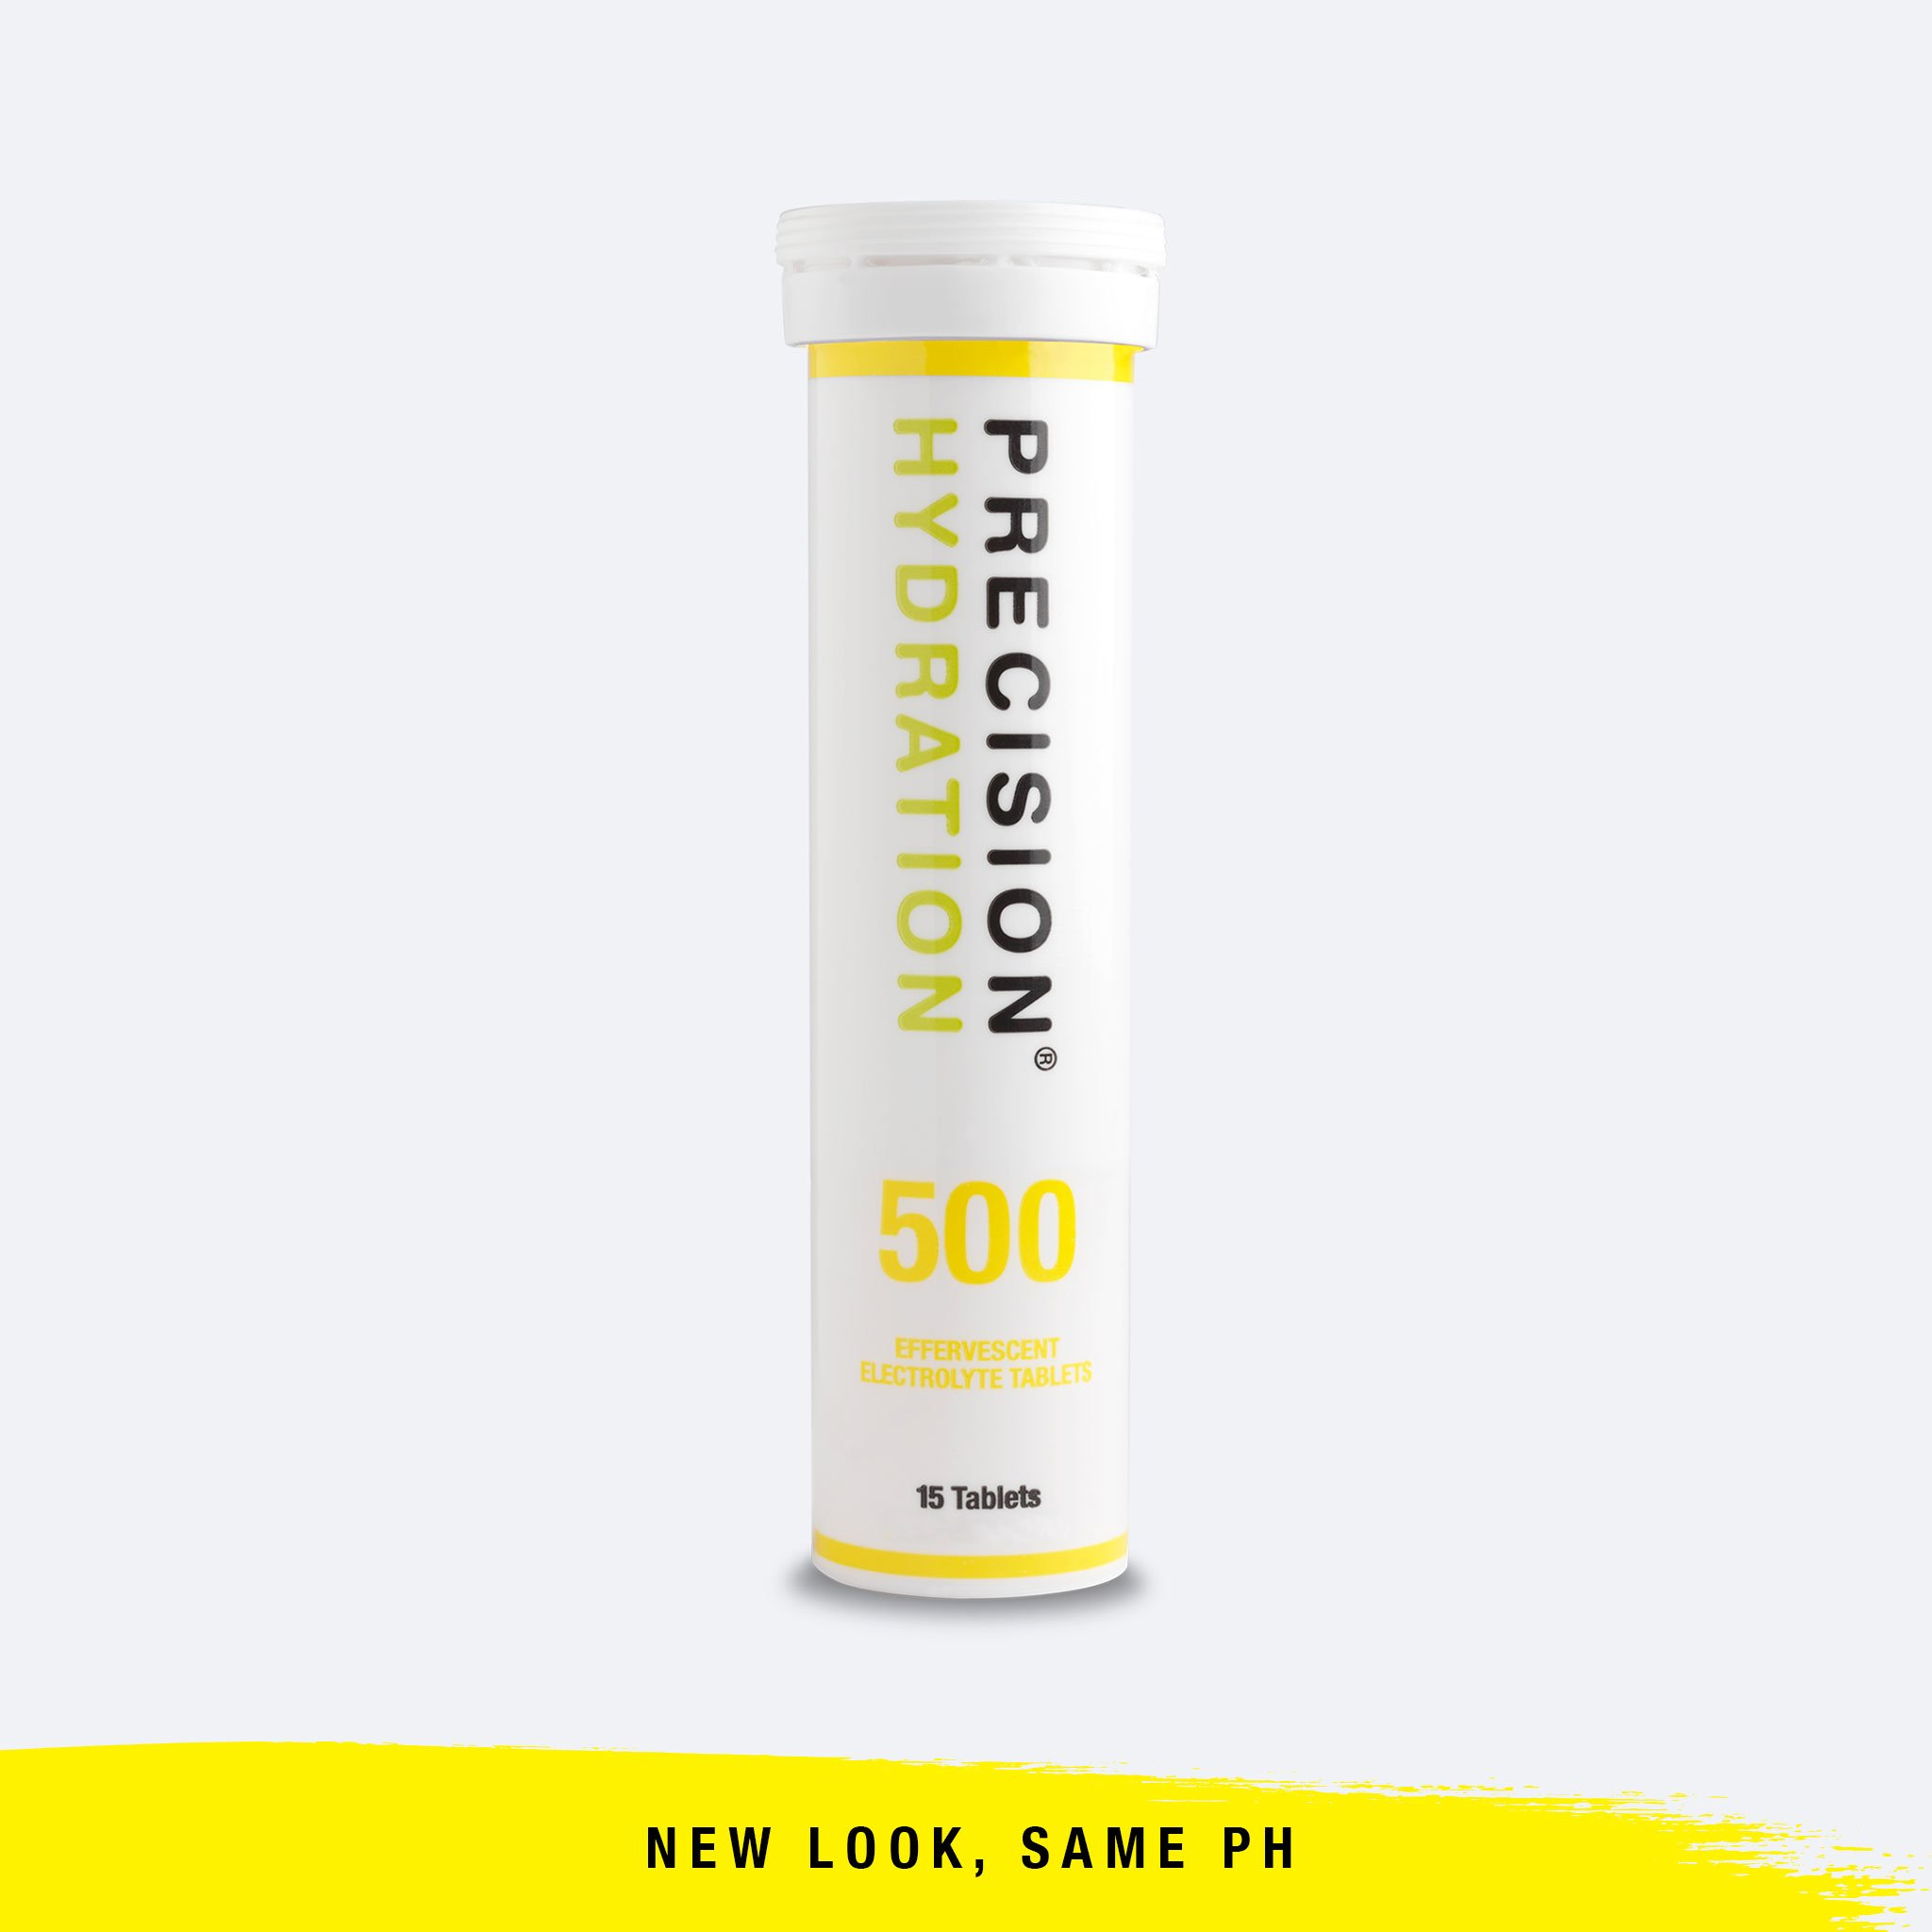 Tube of Precision Hydration 1000 Electrolyte tabs.